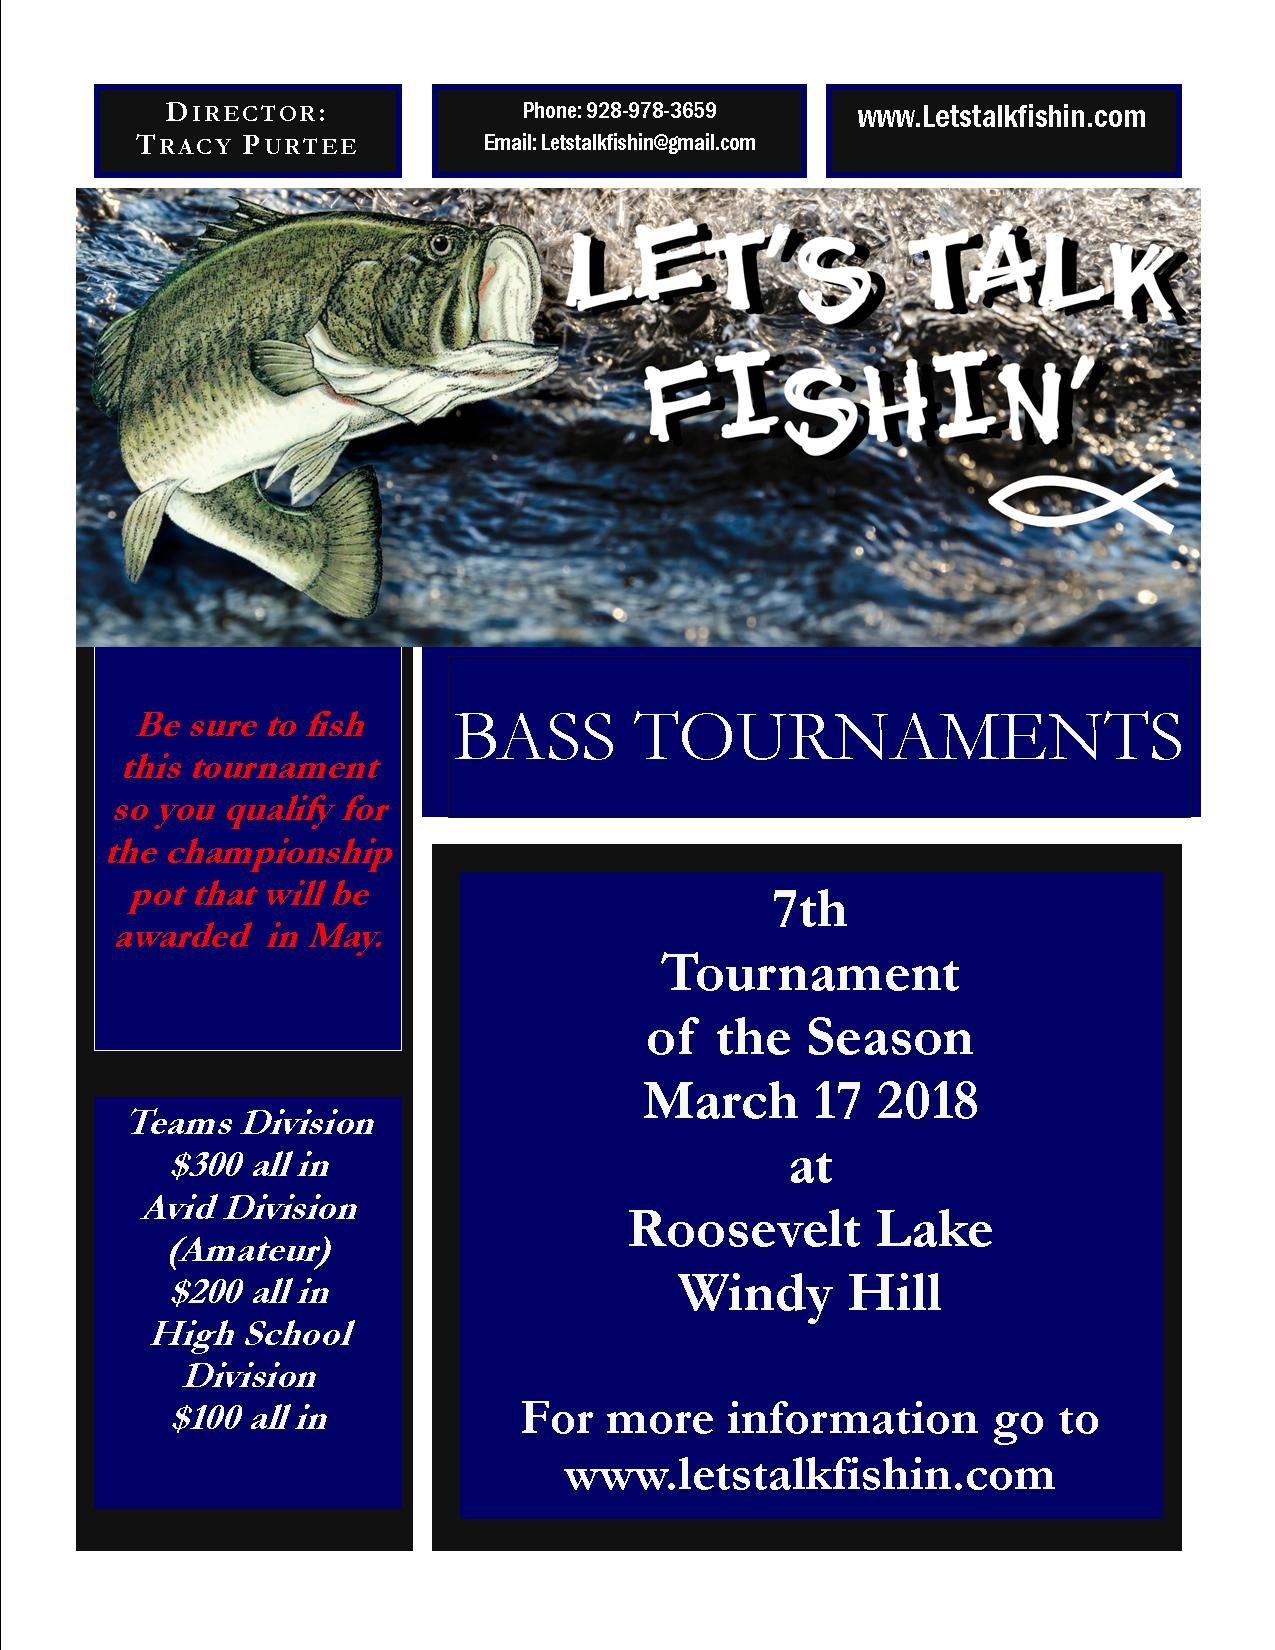 Click image for larger version  Name:7th Tournament.jpg Views:2410 Size:283.6 KB ID:96826